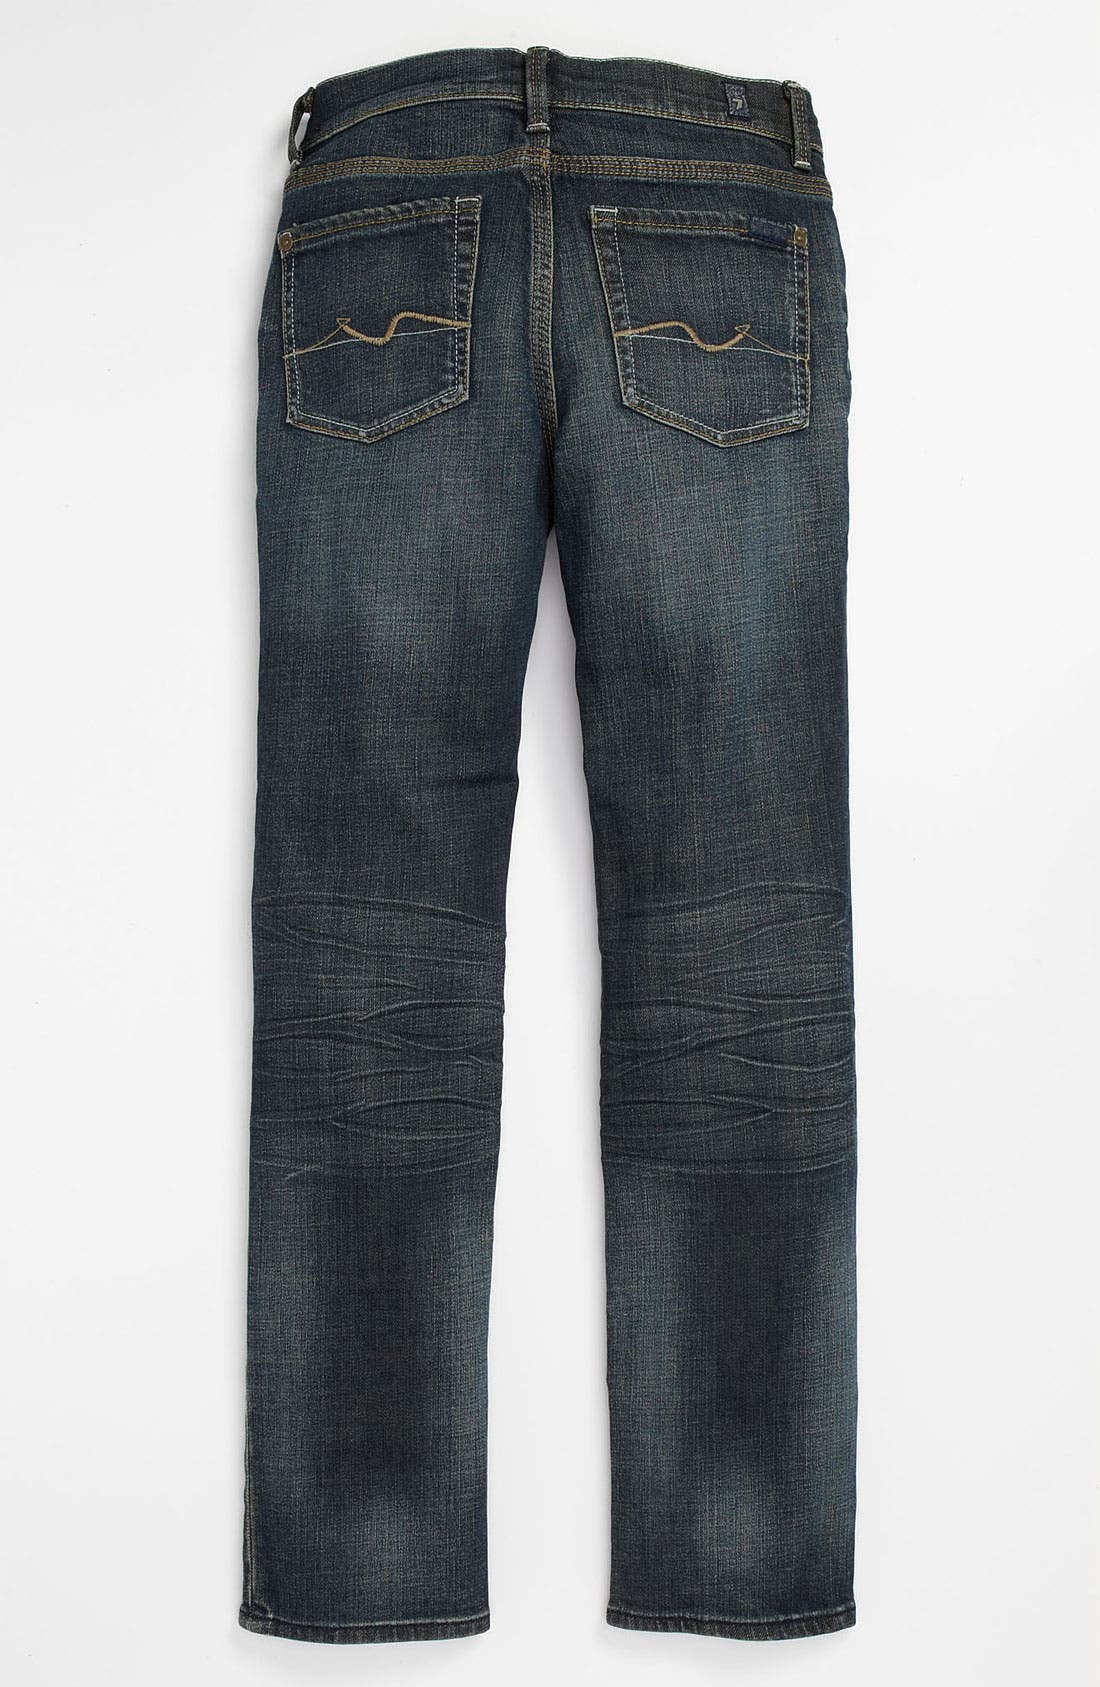 Alternate Image 1 Selected - 7 For All Mankind® 'Rhigby' Skinny Straight Leg Jeans (Big Boys)